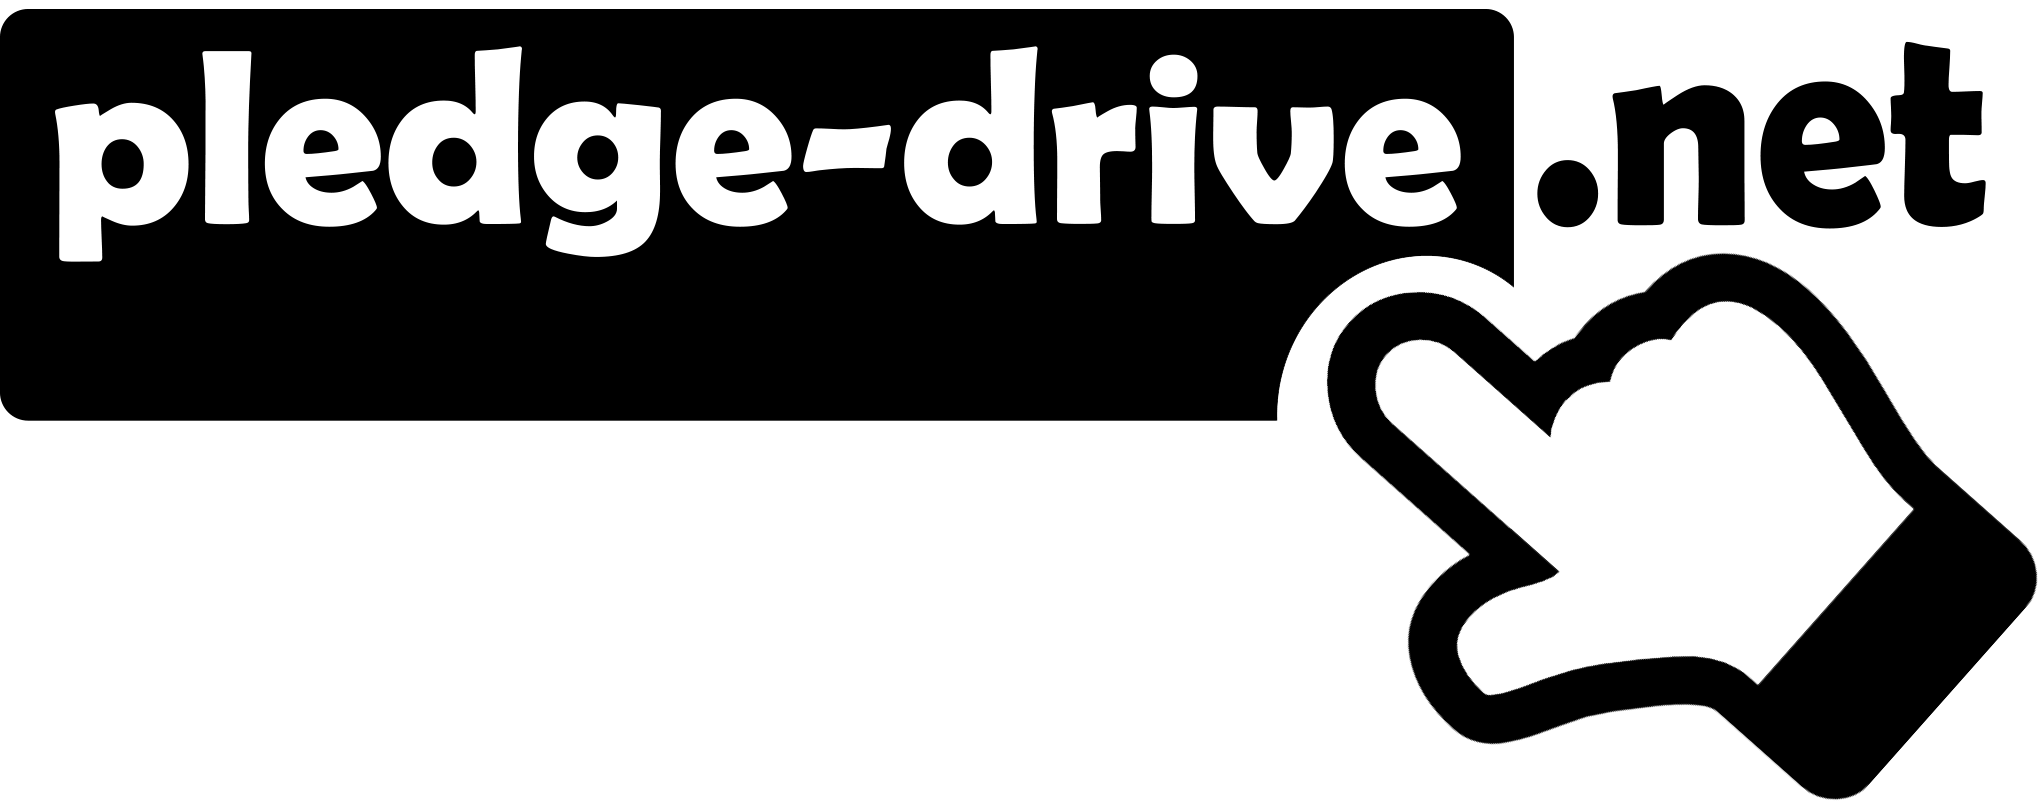 pledge-drive.net